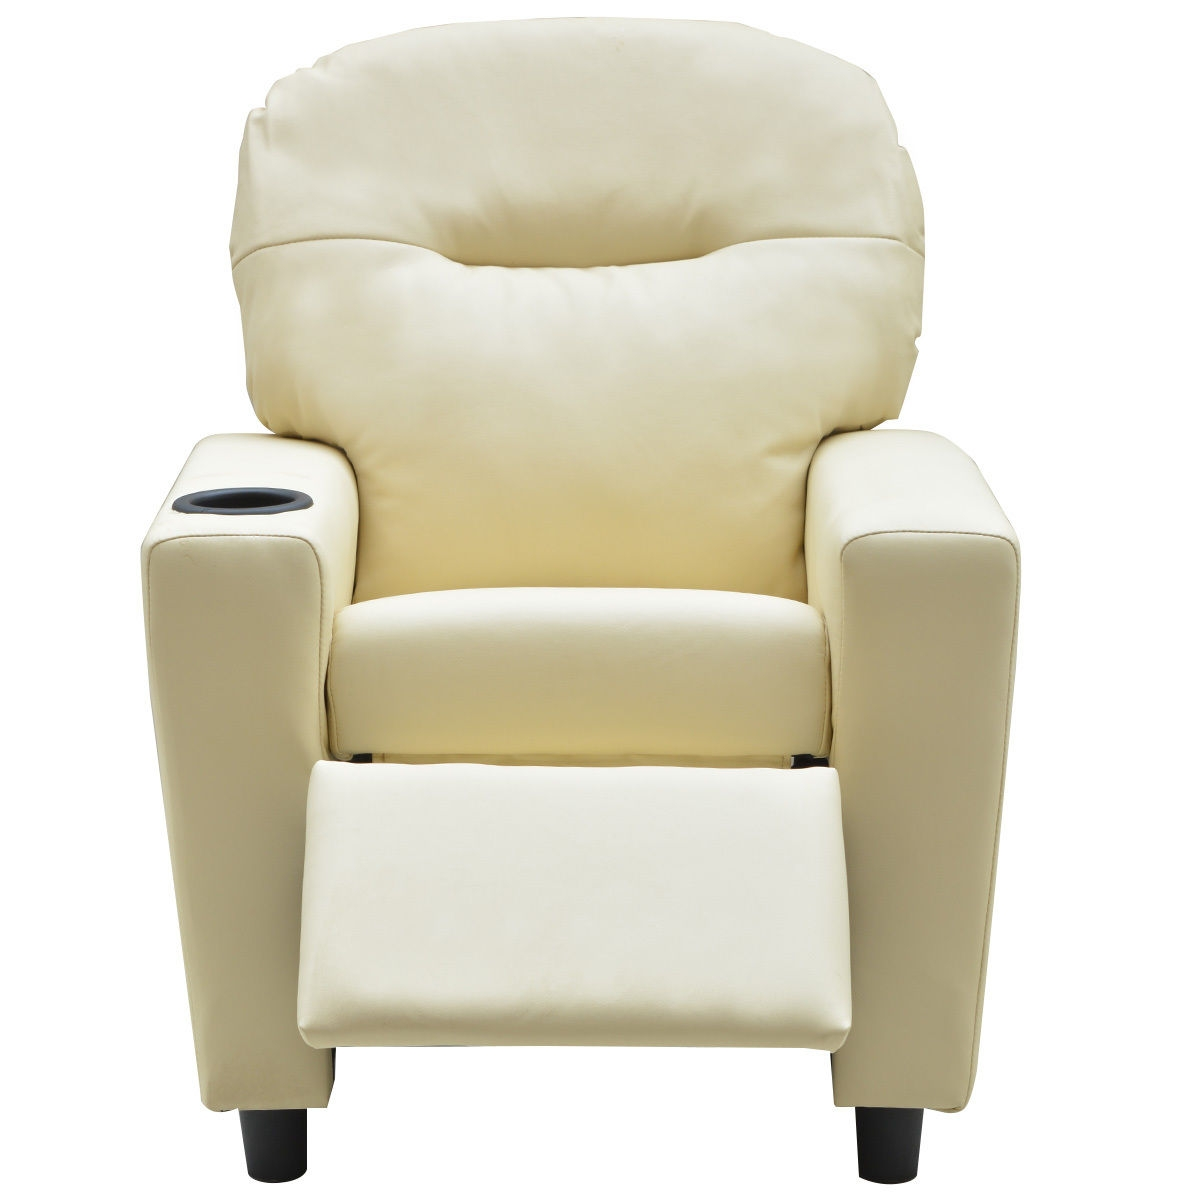 Kids Sofa Manual Recliner PU Ergonomic Lounge Chair-Beige